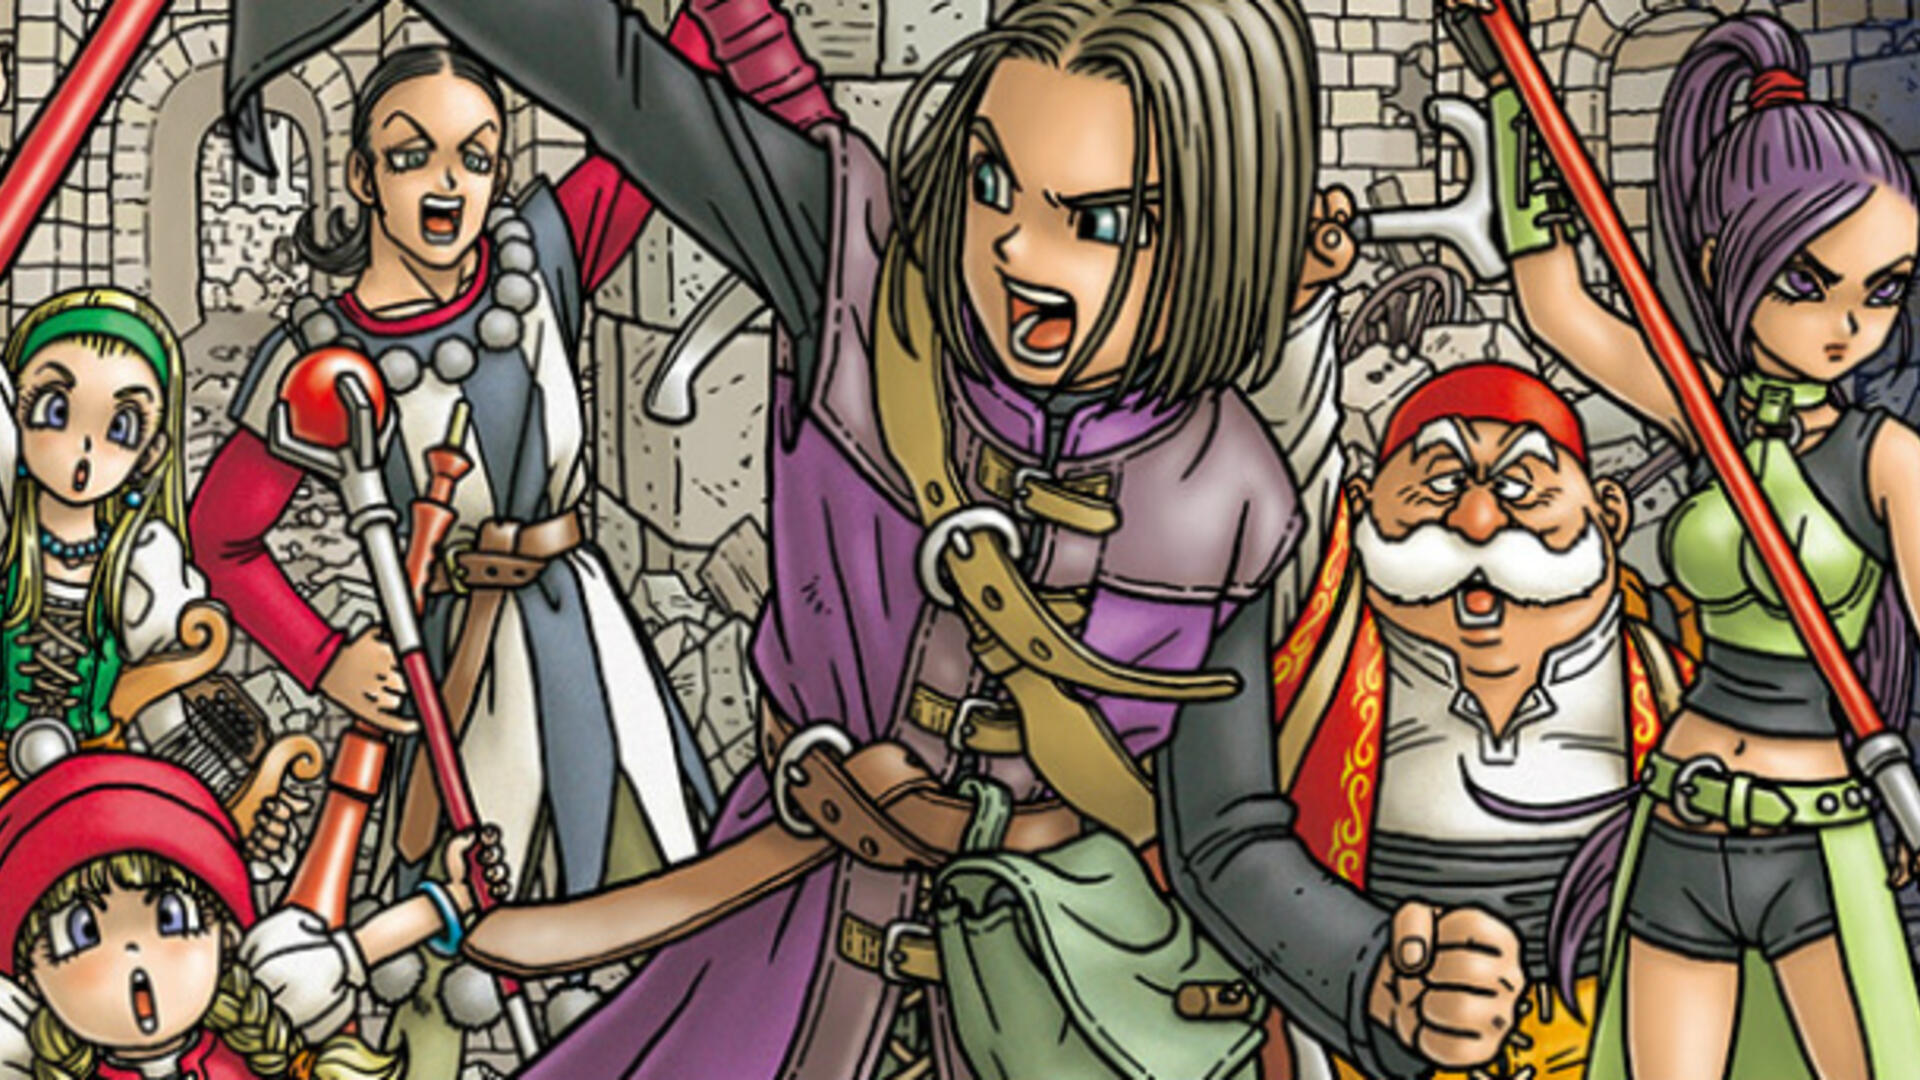 Dragon Quest XI Director Acknowledges the Harm of Crunch, Suggests AI Might Help Reduce it Someday